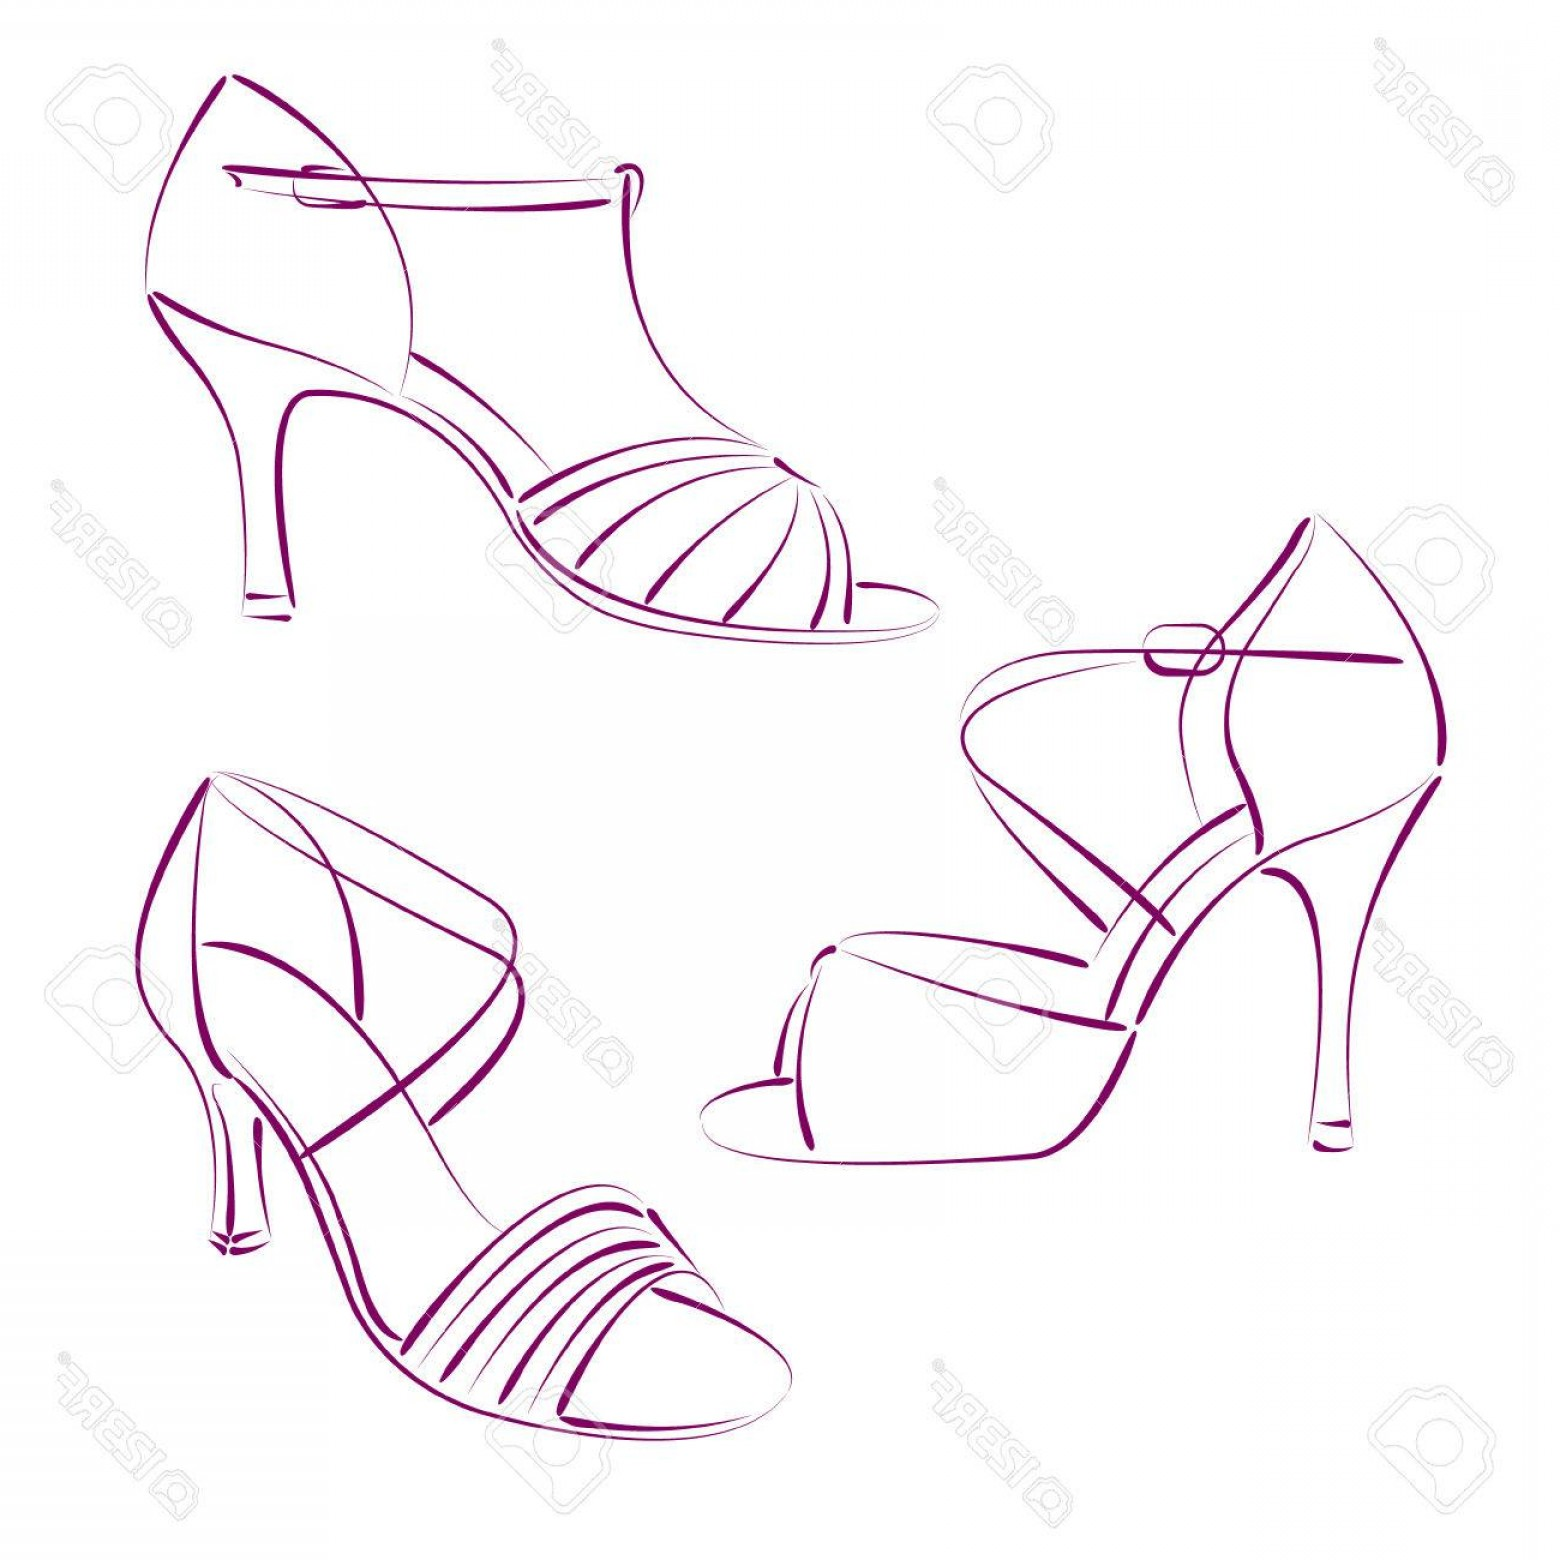 Dance Shoes Vector Art: Photostock Vector Set Of Elegant Sketched Woman S Shoes Isolated On White Background Salsa Dance Shoes Vector